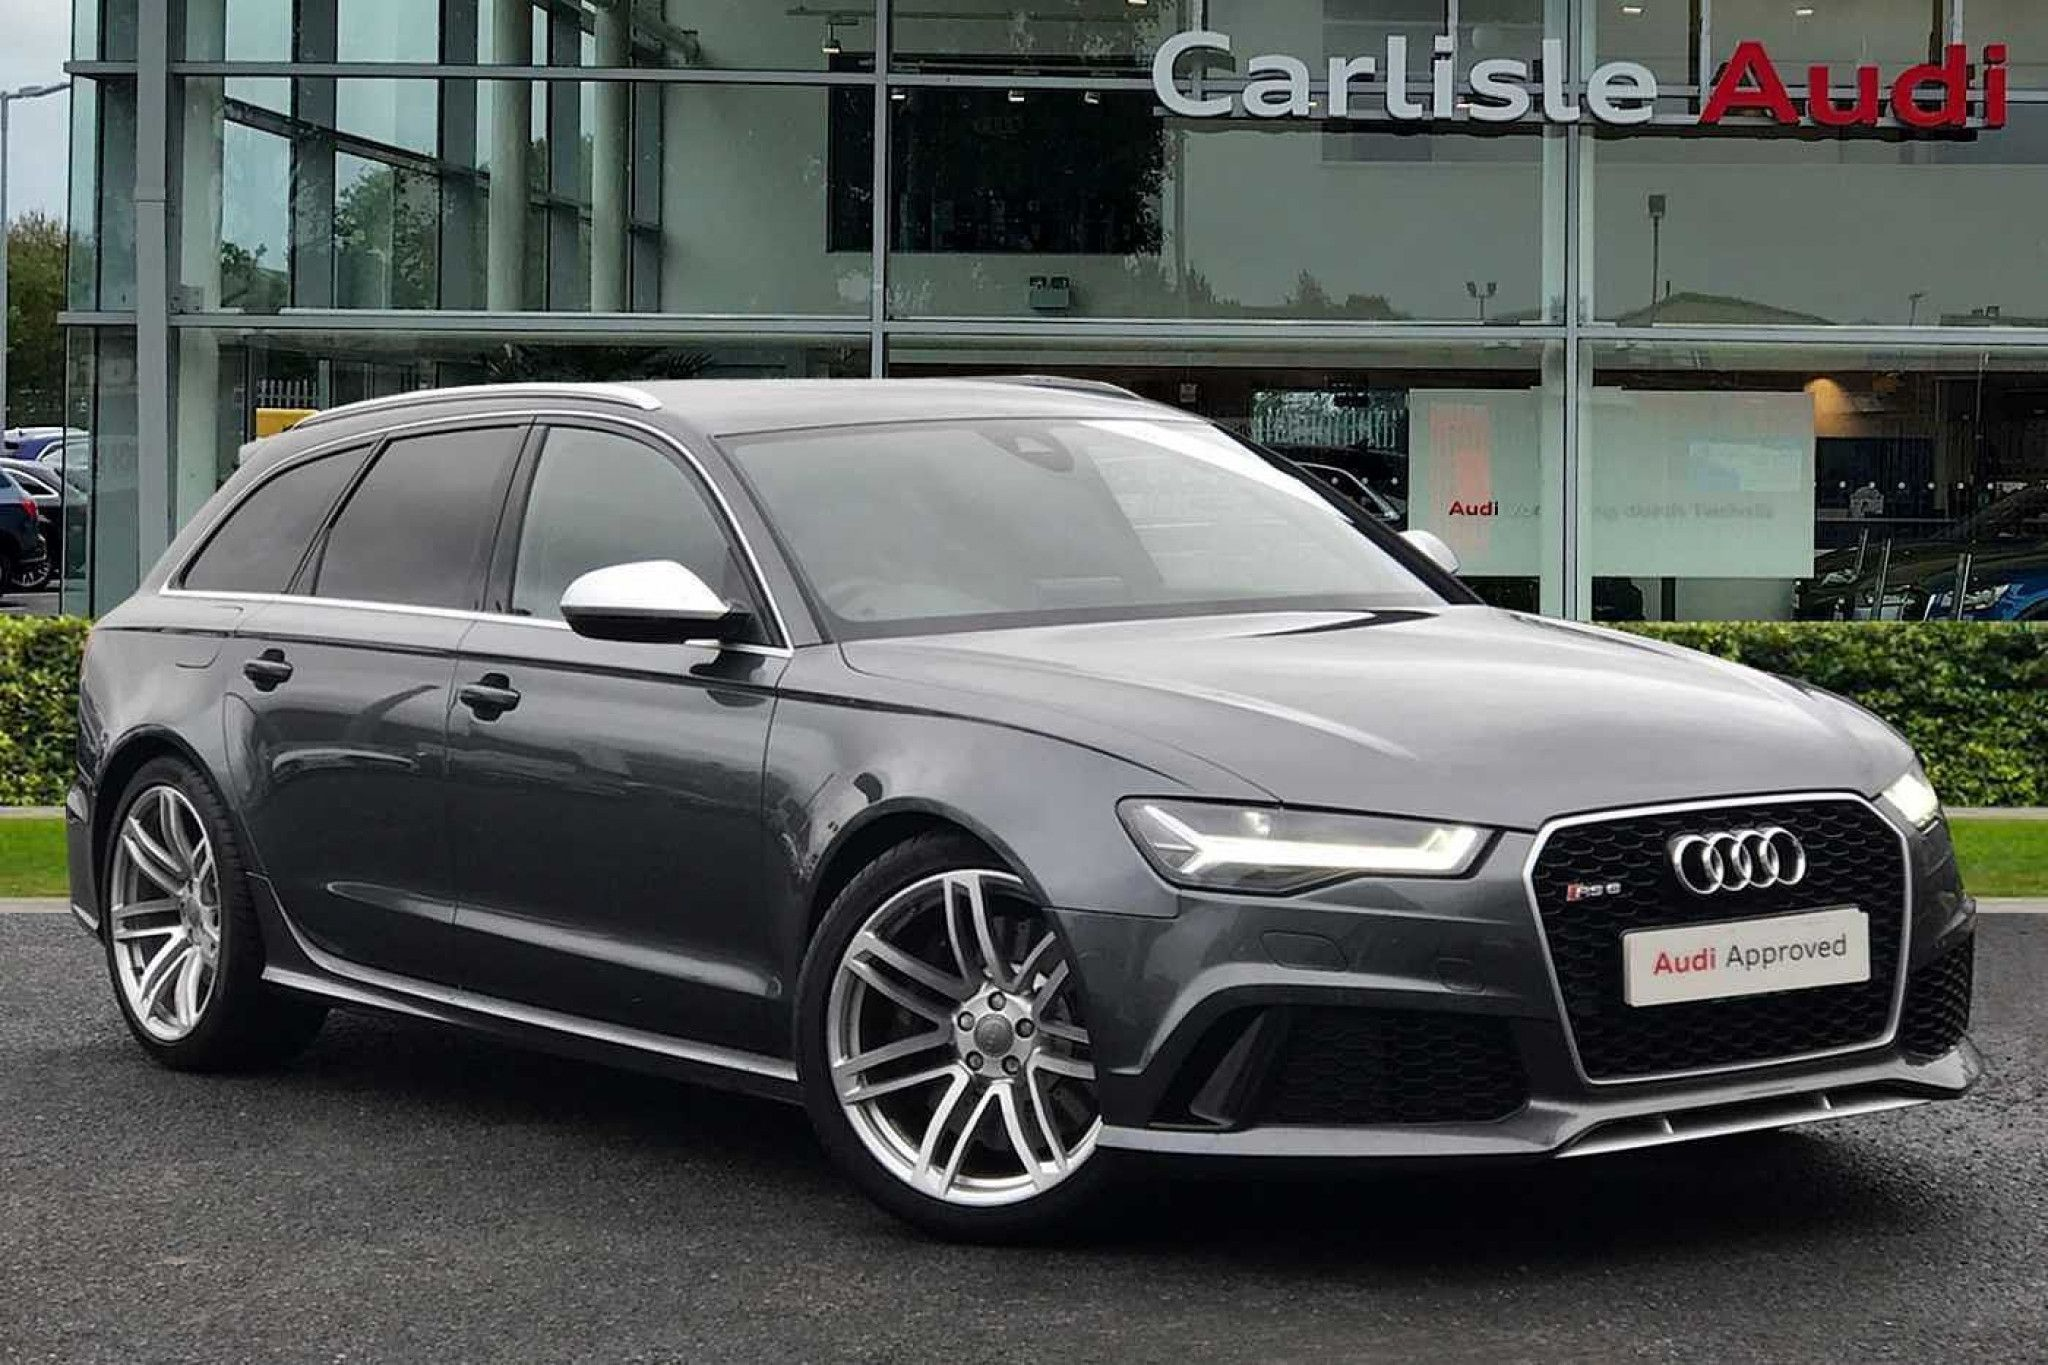 Audi Rs6 4 0t Fsi Quattro Rs 6 5dr Tip Auto For Sale In 2020 Audi Rs6 Audi Used Audi